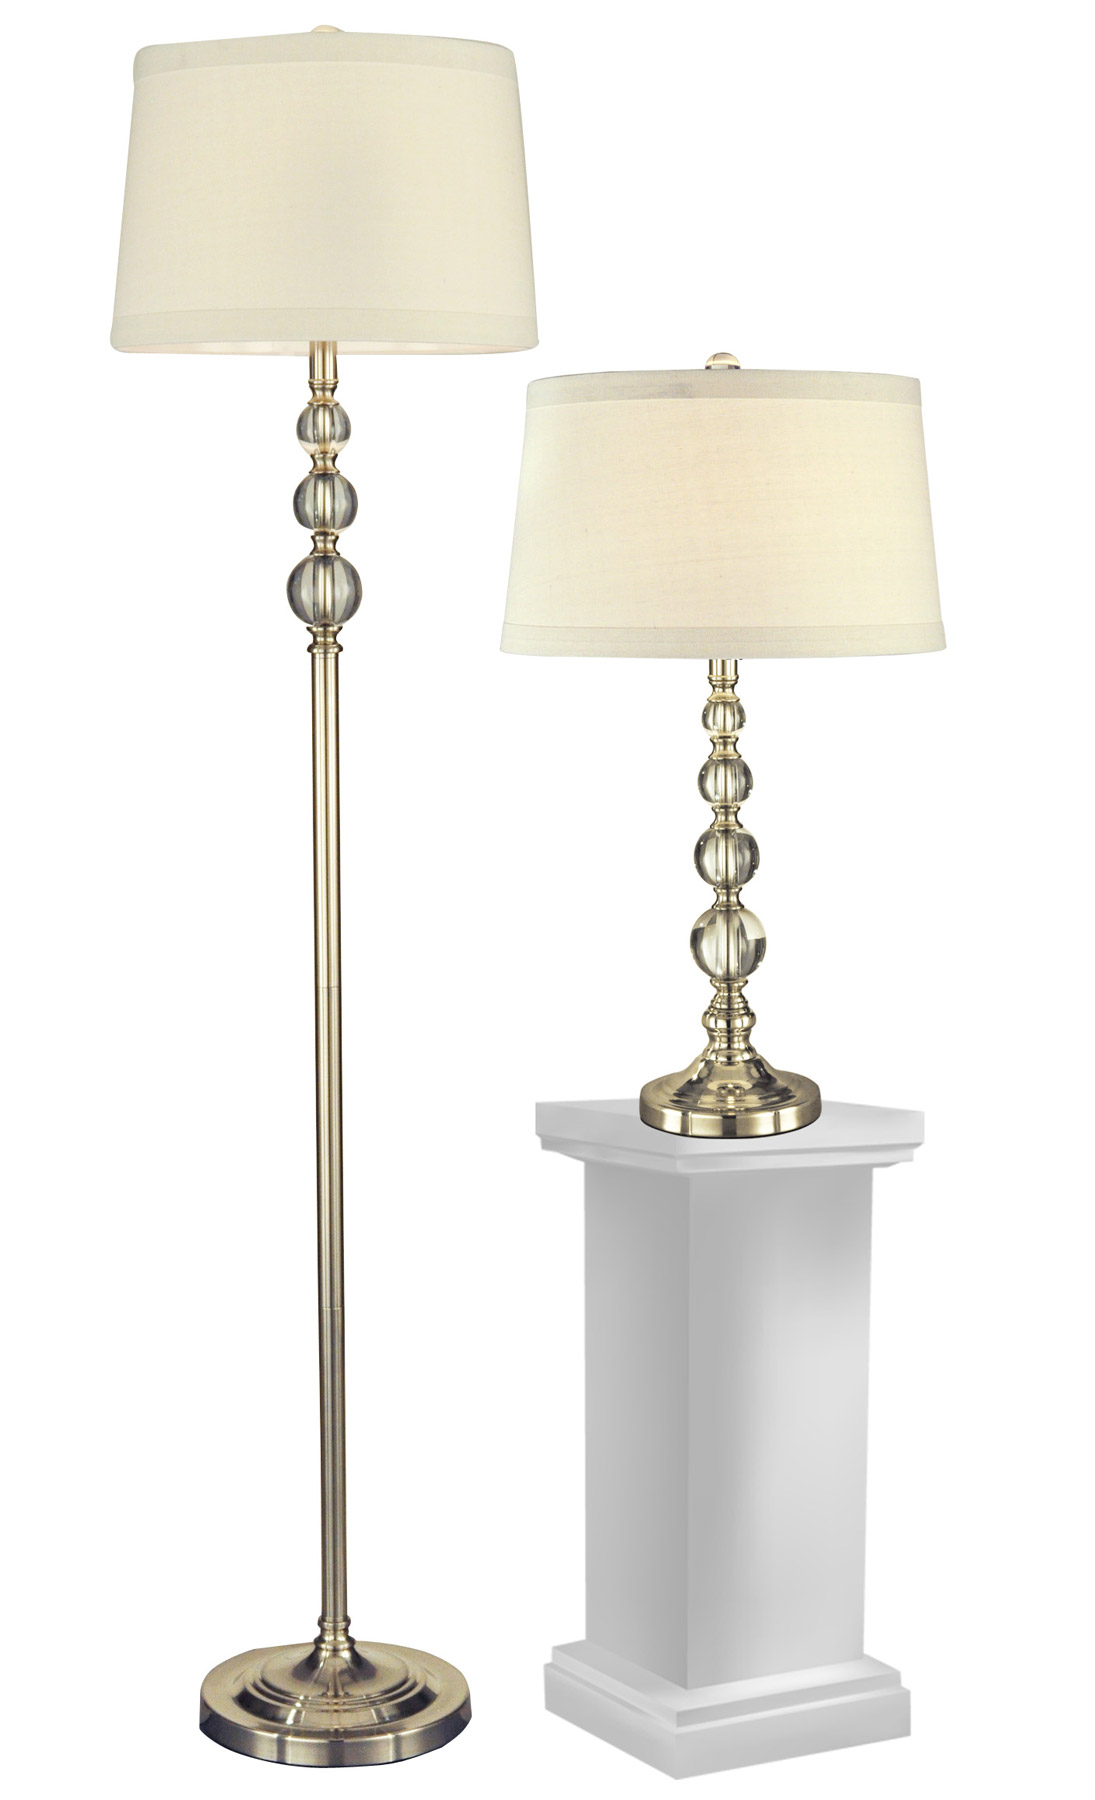 Dale tiffany gc12290 crystal optic orb table and floor lamp set 1 dale tiffany gc12290 crystal optic orb table and floor lamp set 1 of each aloadofball